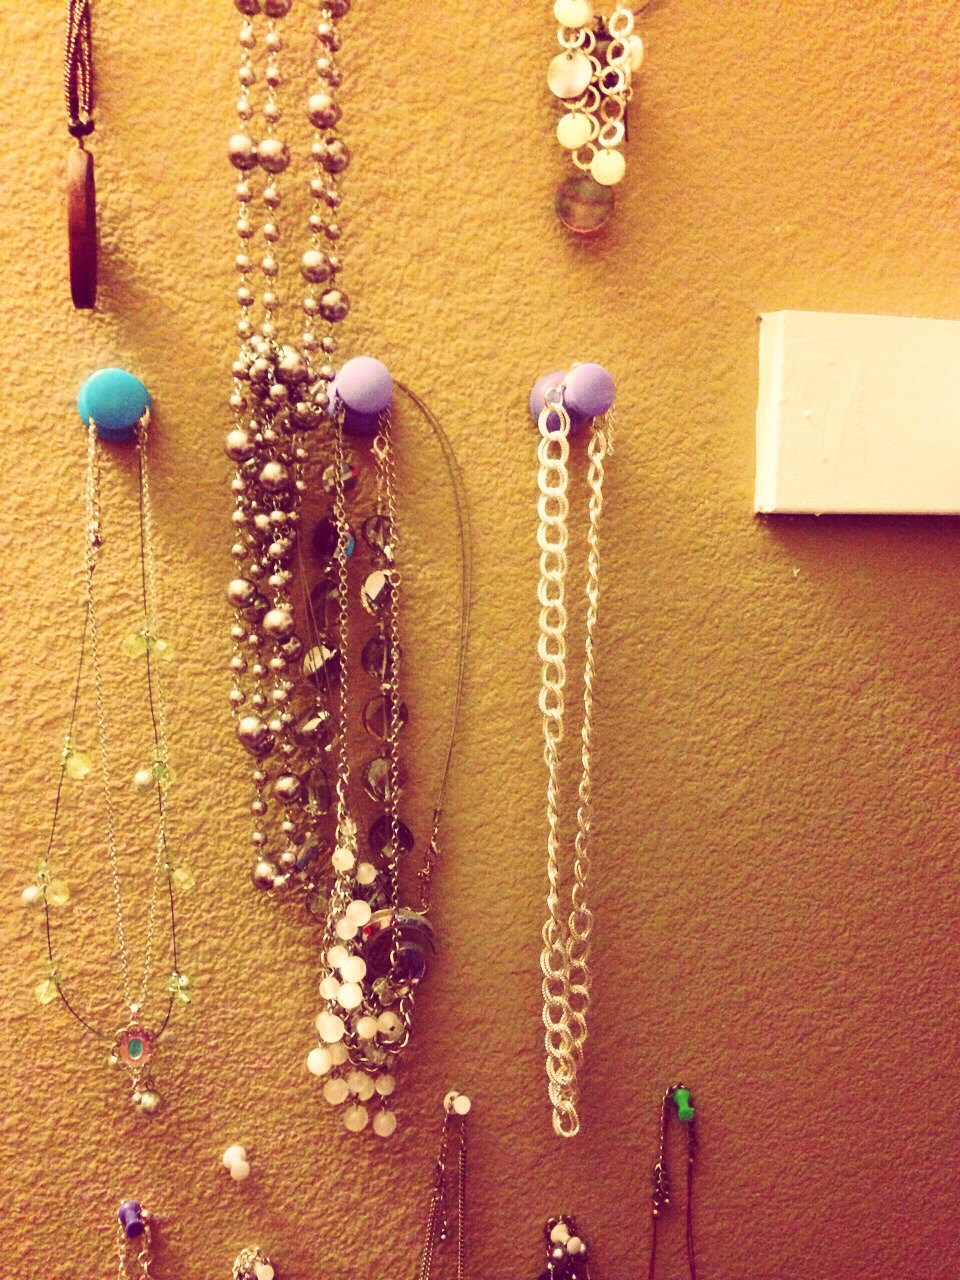 Push pins in various sizes / decorative or plain pushed into your closet wall.. Hang necklaces for east viewing ri ght by your wardrobe /  share